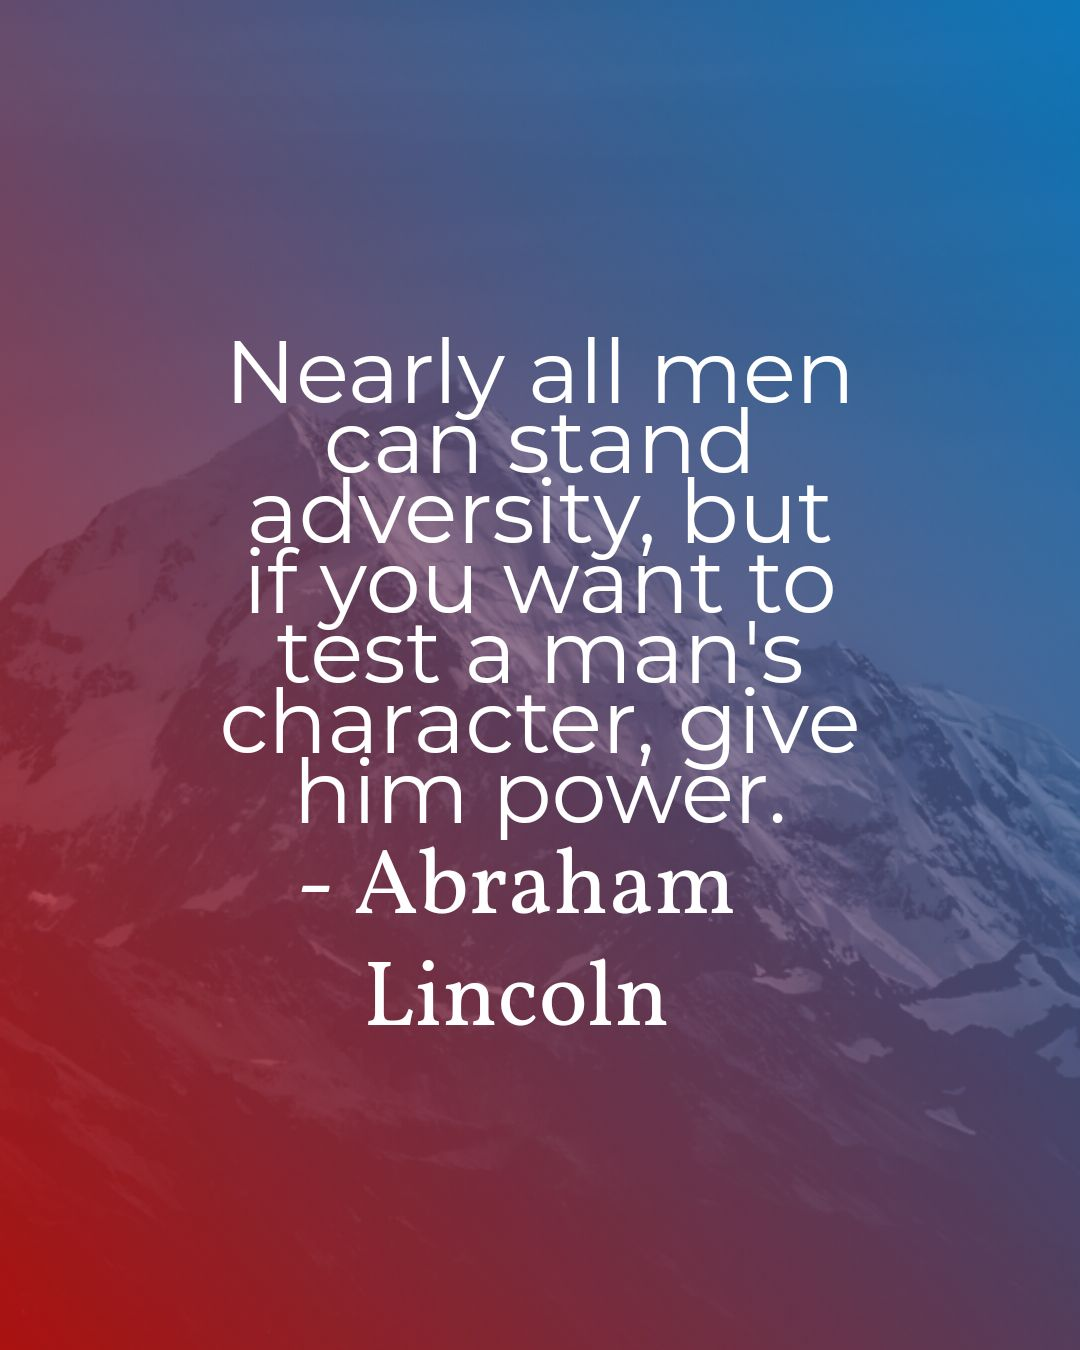 Nearly all men can stand adversity, but if you want to test a man's character, give him power. – Abraham Lincoln [1080×1350]